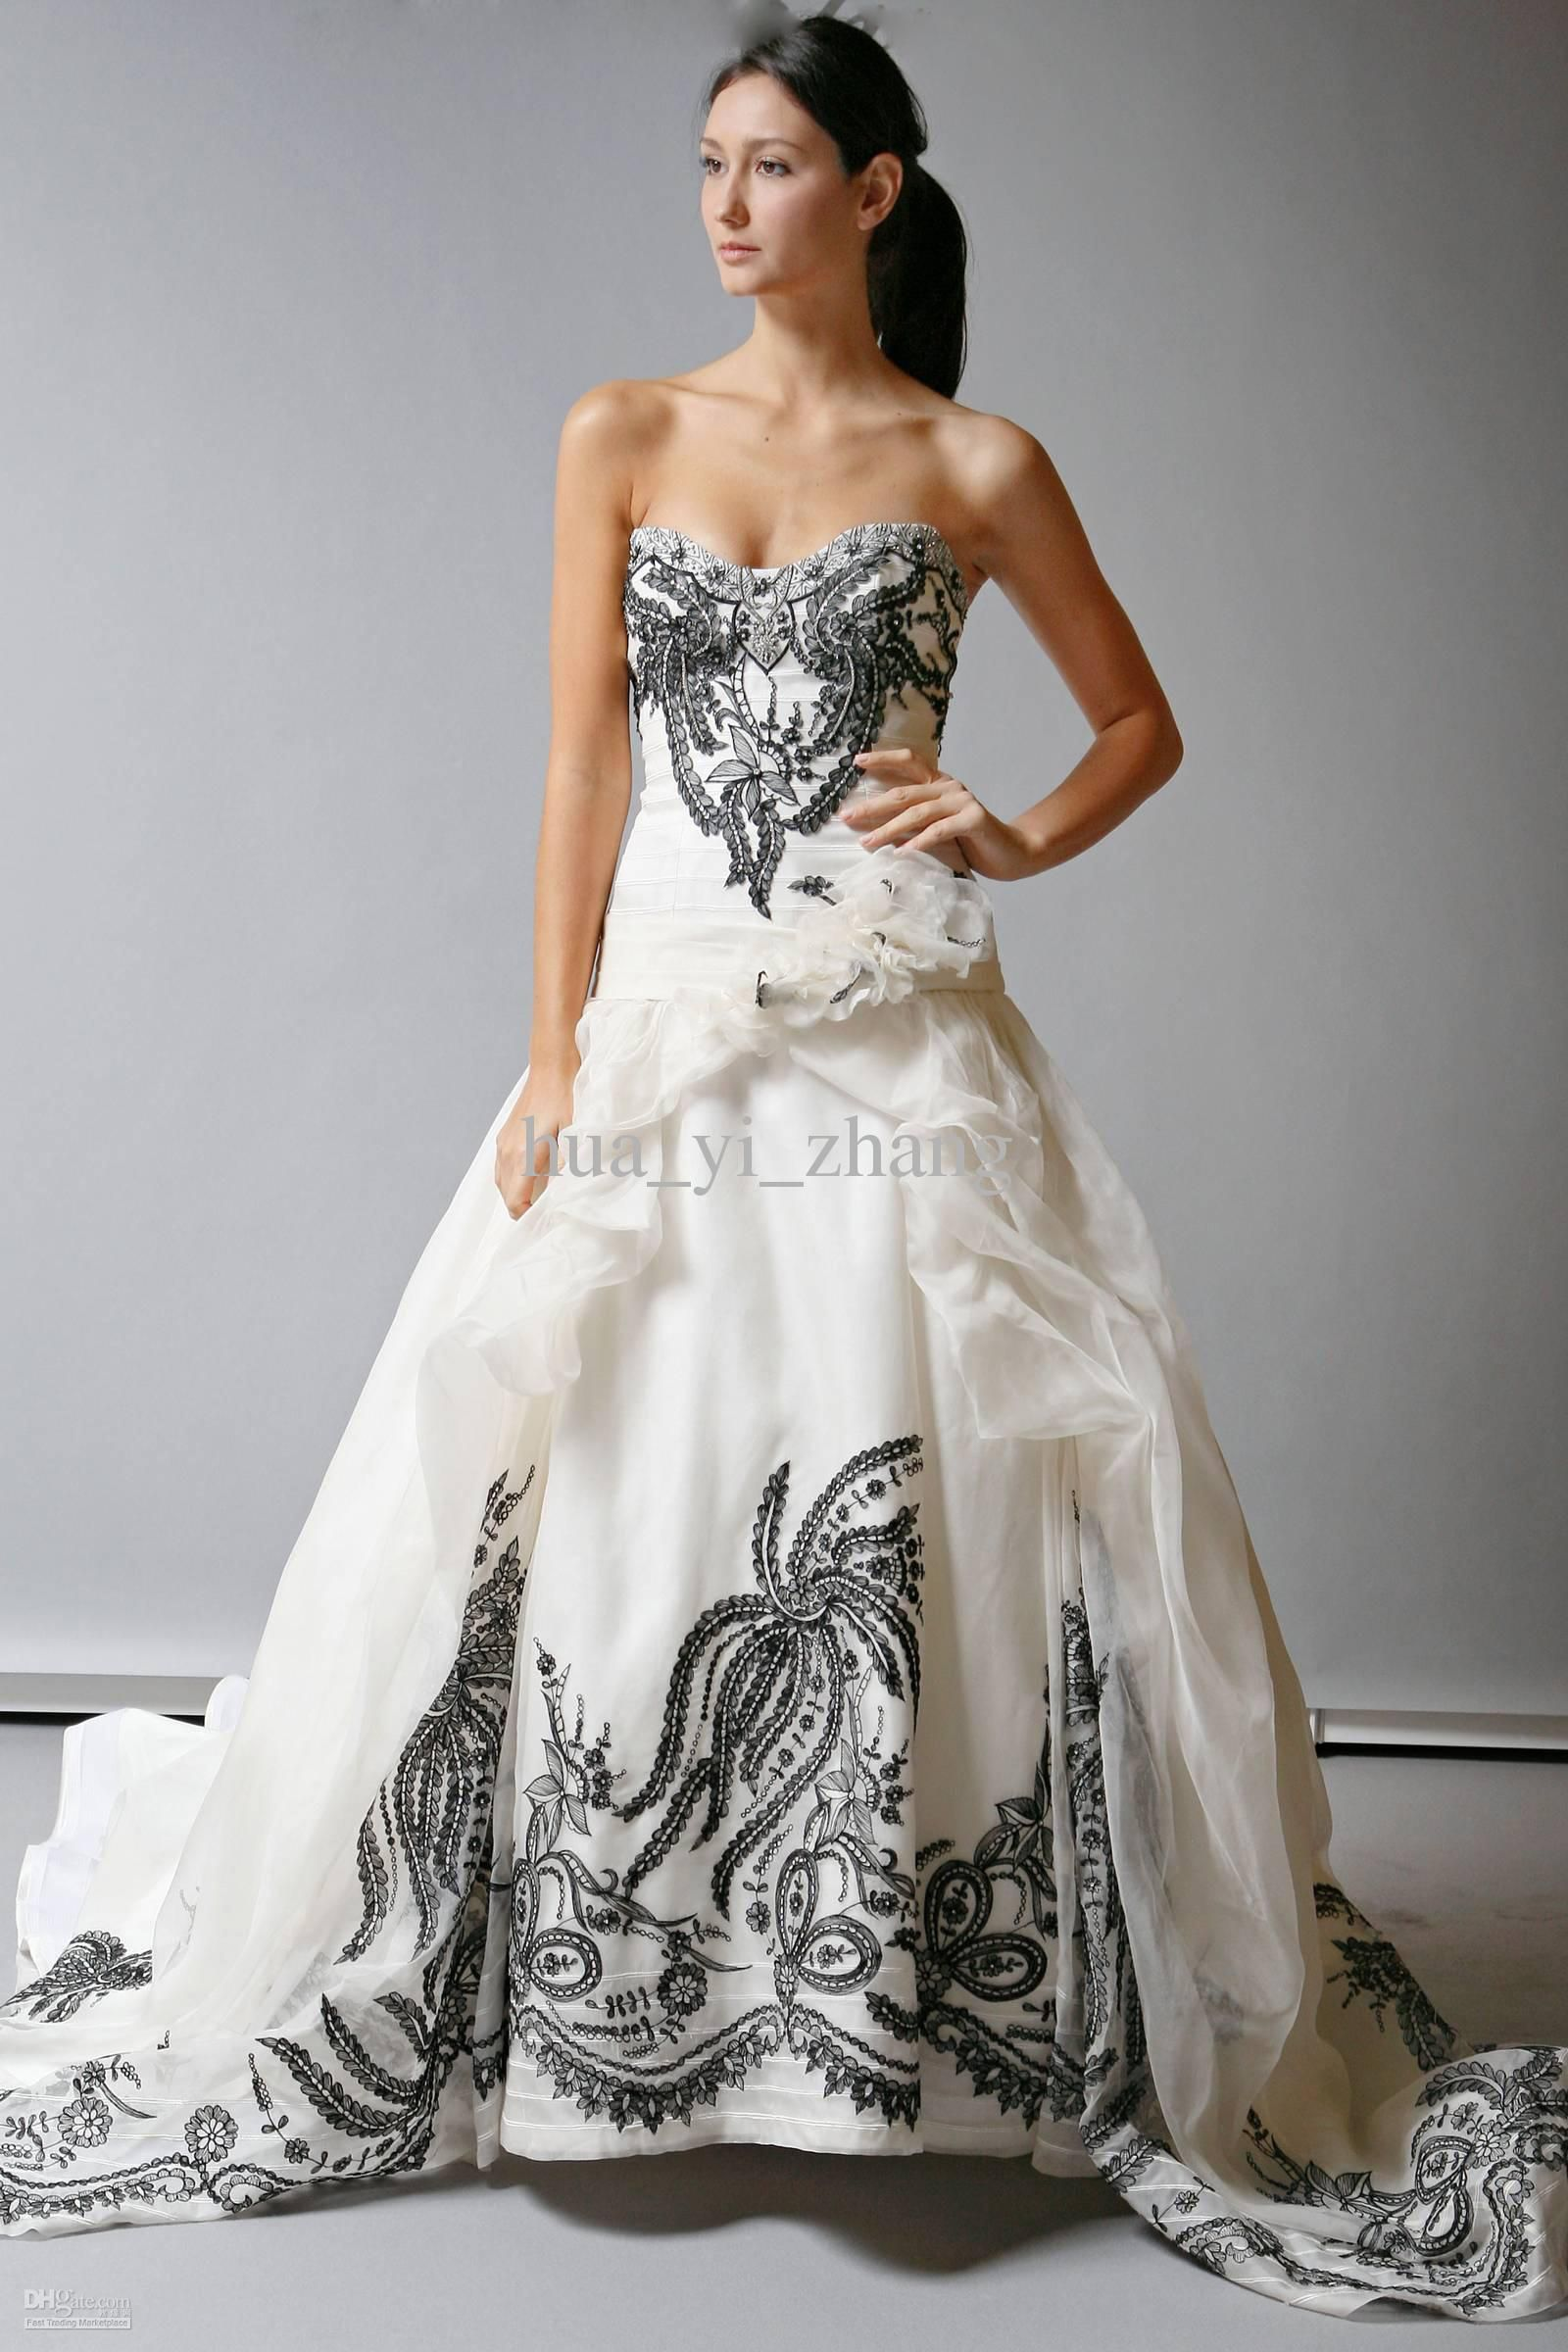 2016 Vintage White And Black Embroidery Wedding Dresses Real Images Organza Sweetheart Hotfix Rhinestones Beaded With 3D Flowers Bridal Gown